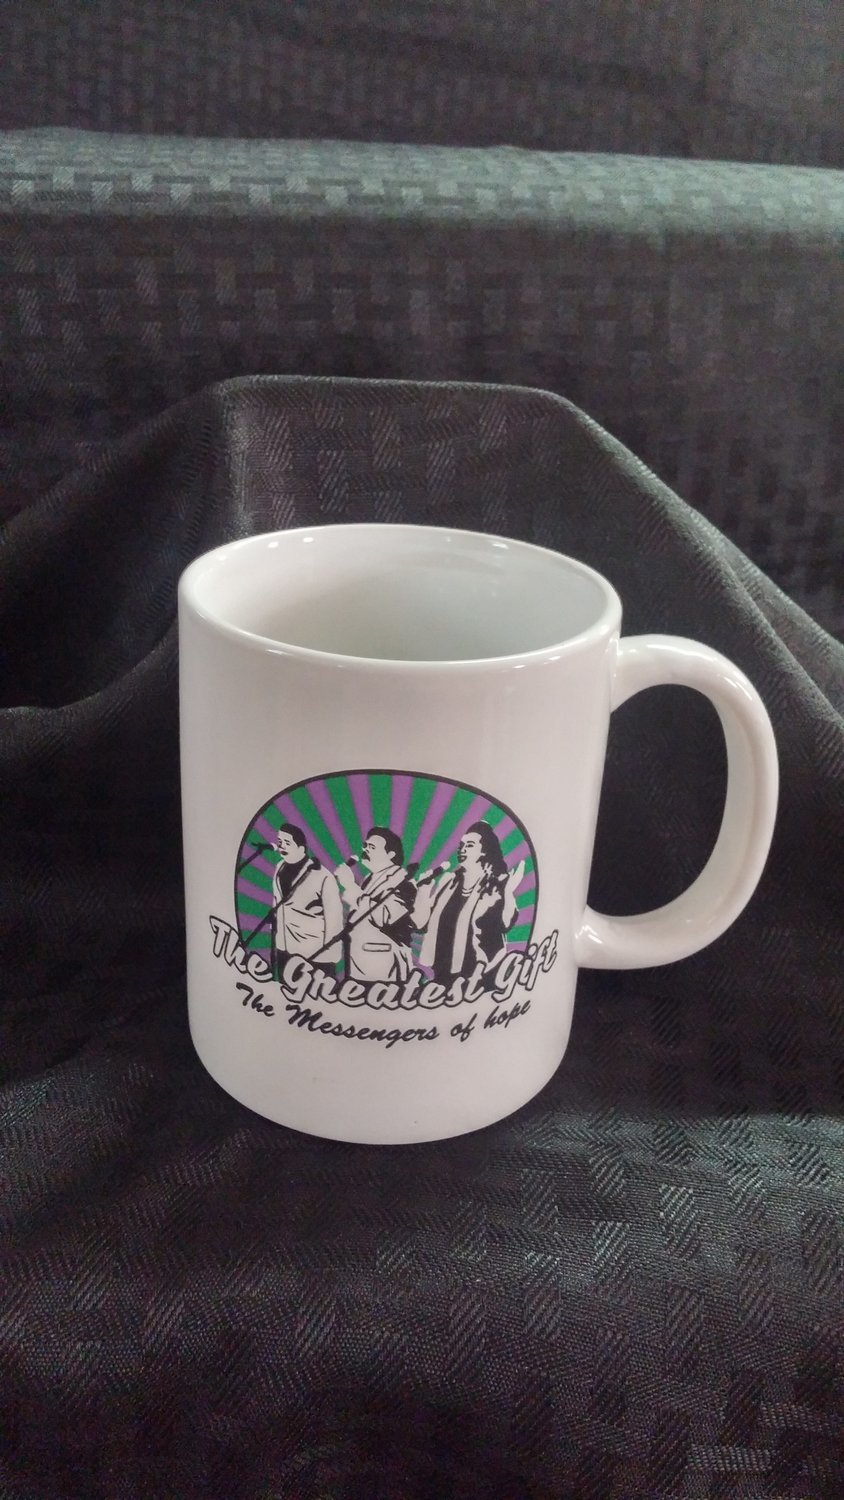 The Greatest Gift Coffee Mug